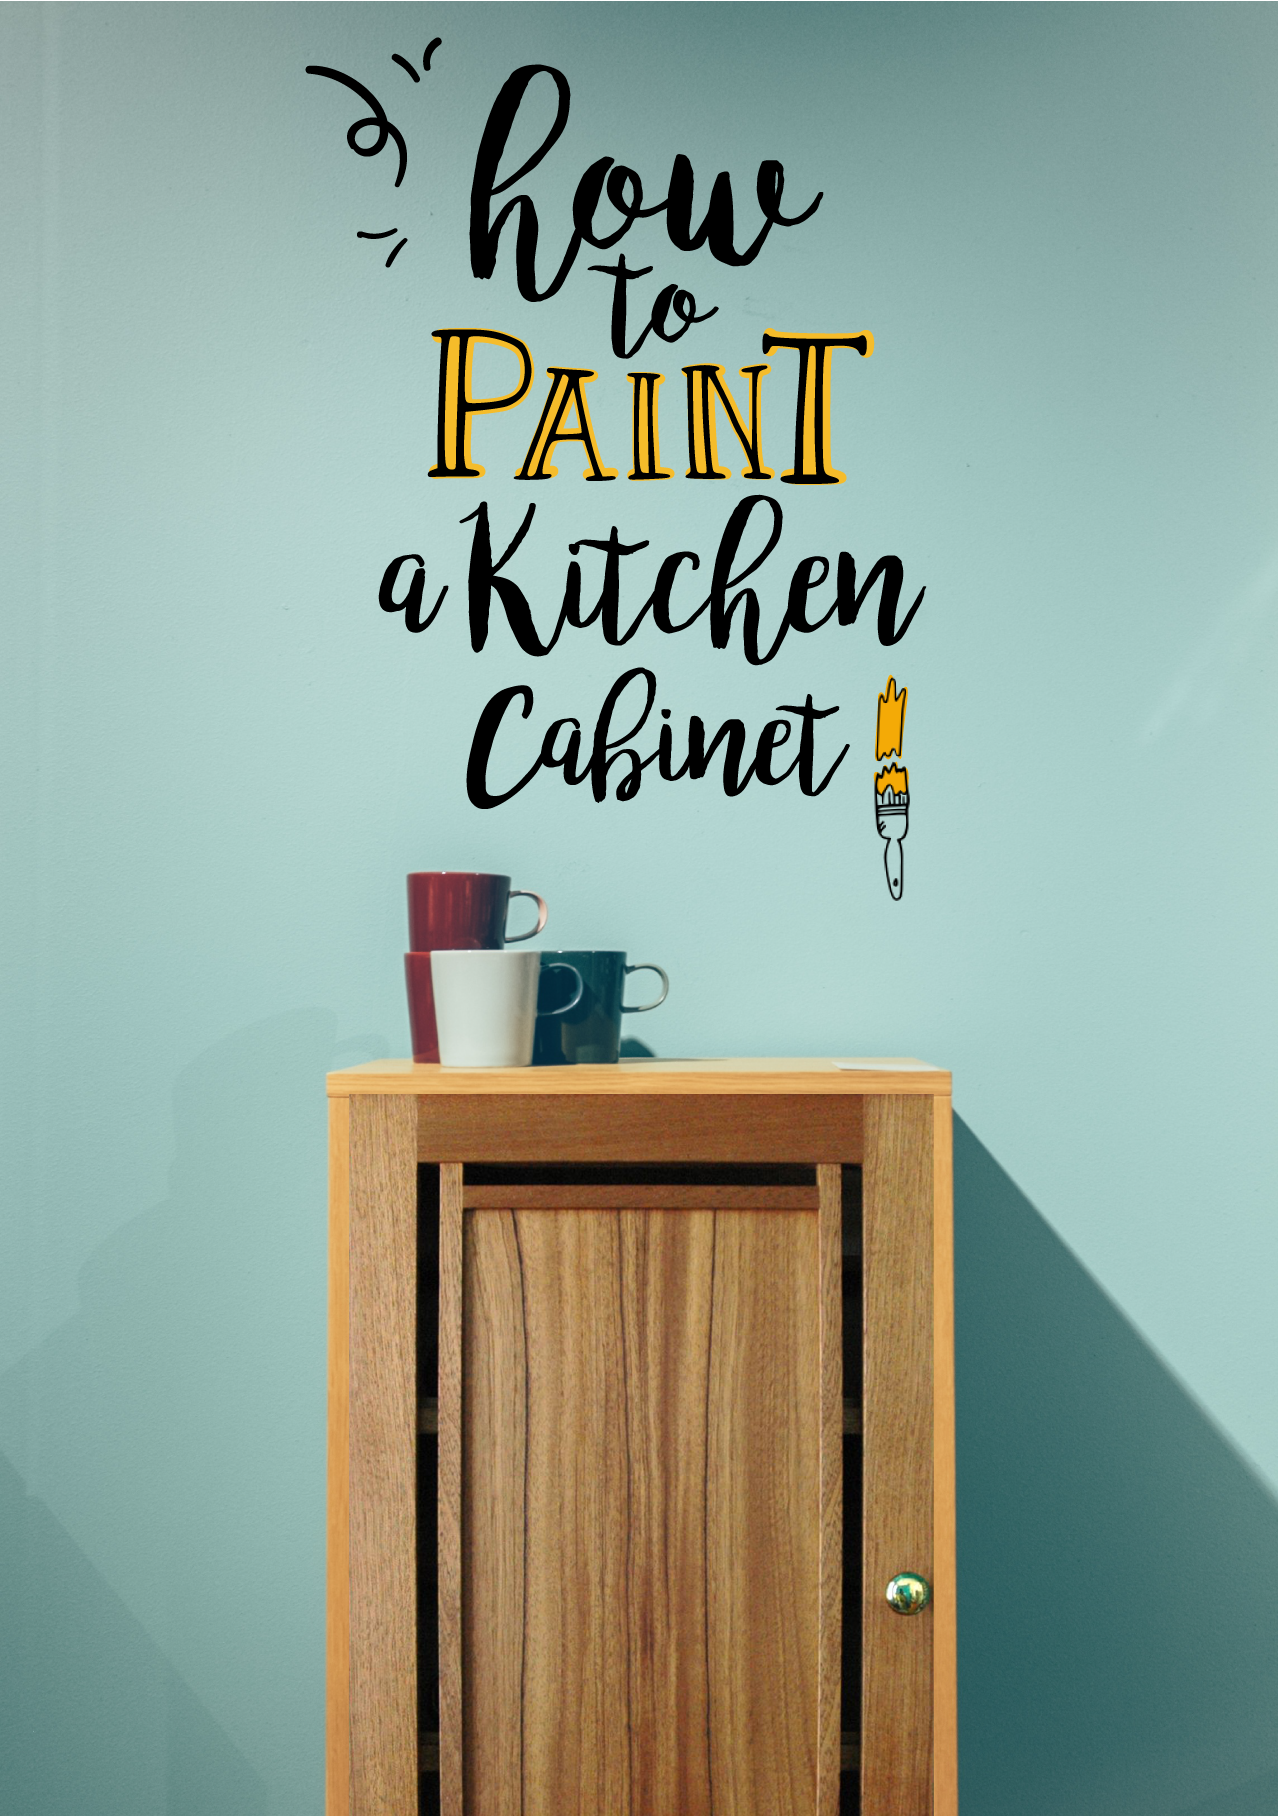 8 easy steps to paint a kitchen cabinet! Hoy, tú y yo vamos a pintar ...